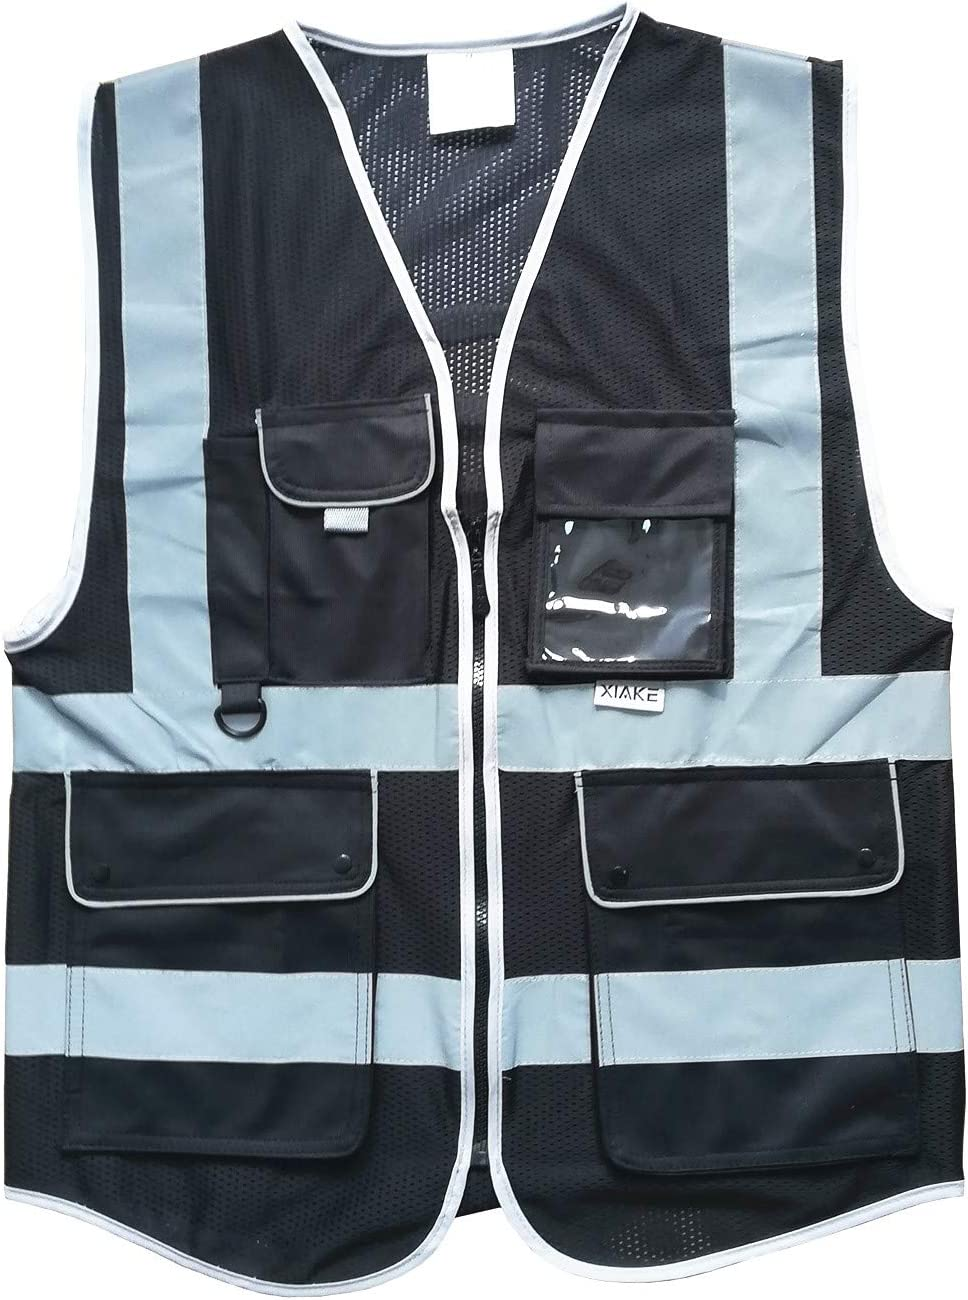 XIAKE Black Rapid rise Mesh Max 69% OFF Safety Vest with Meets Front Zipper Pockets 8